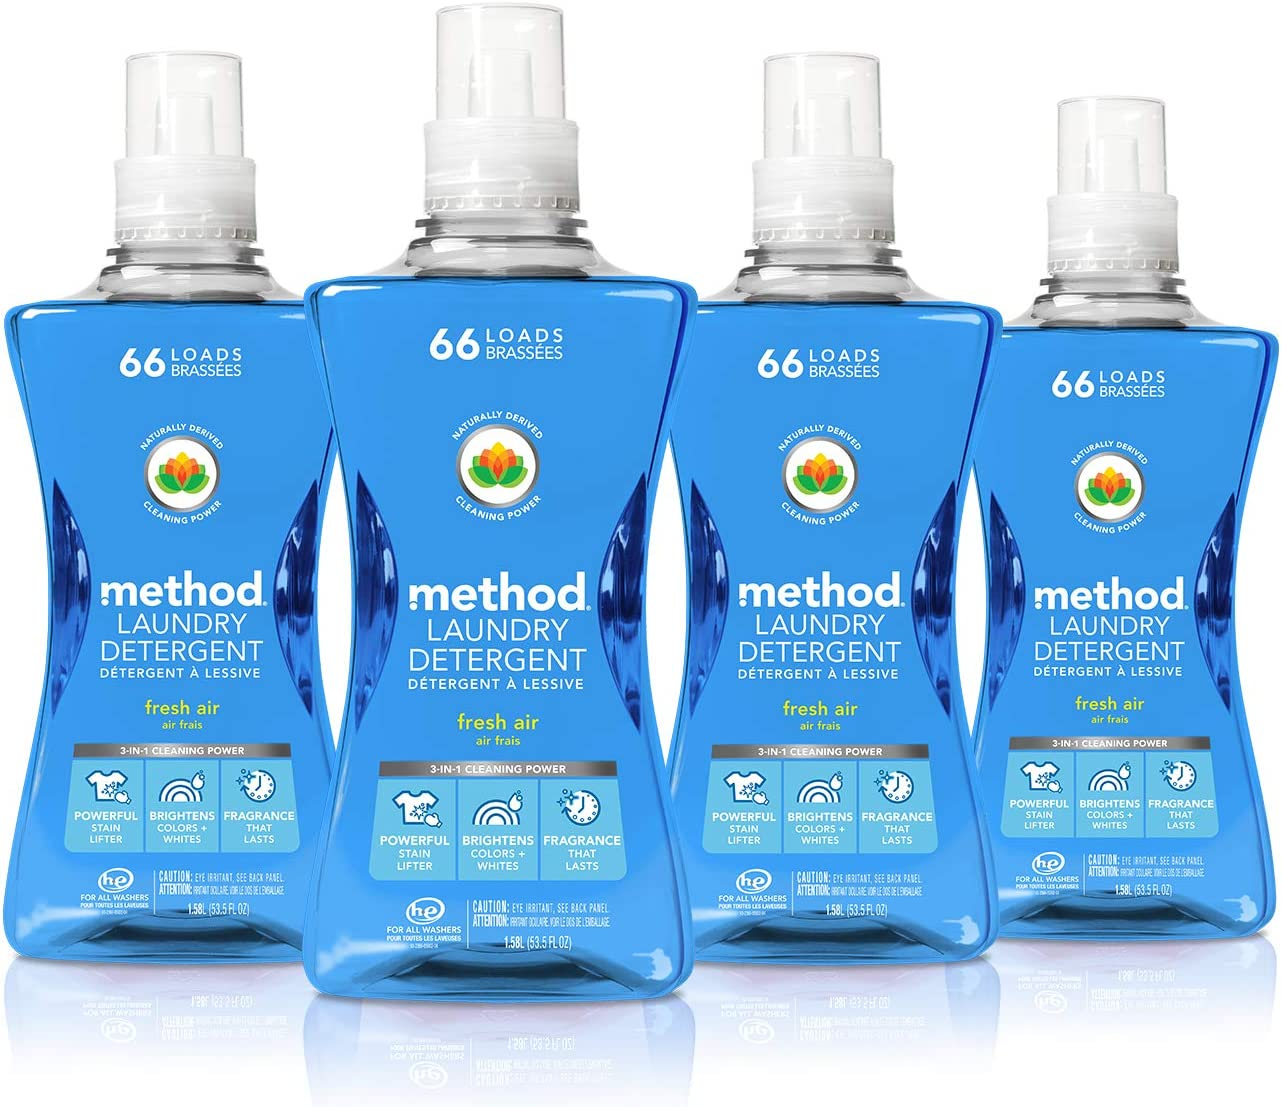 Method Concentrated Laundry Detergent, Naturally Derived, Fresh Air Scent, 264 Loads, 53.5 Fluid Ounce per Bottle, Pack of 4